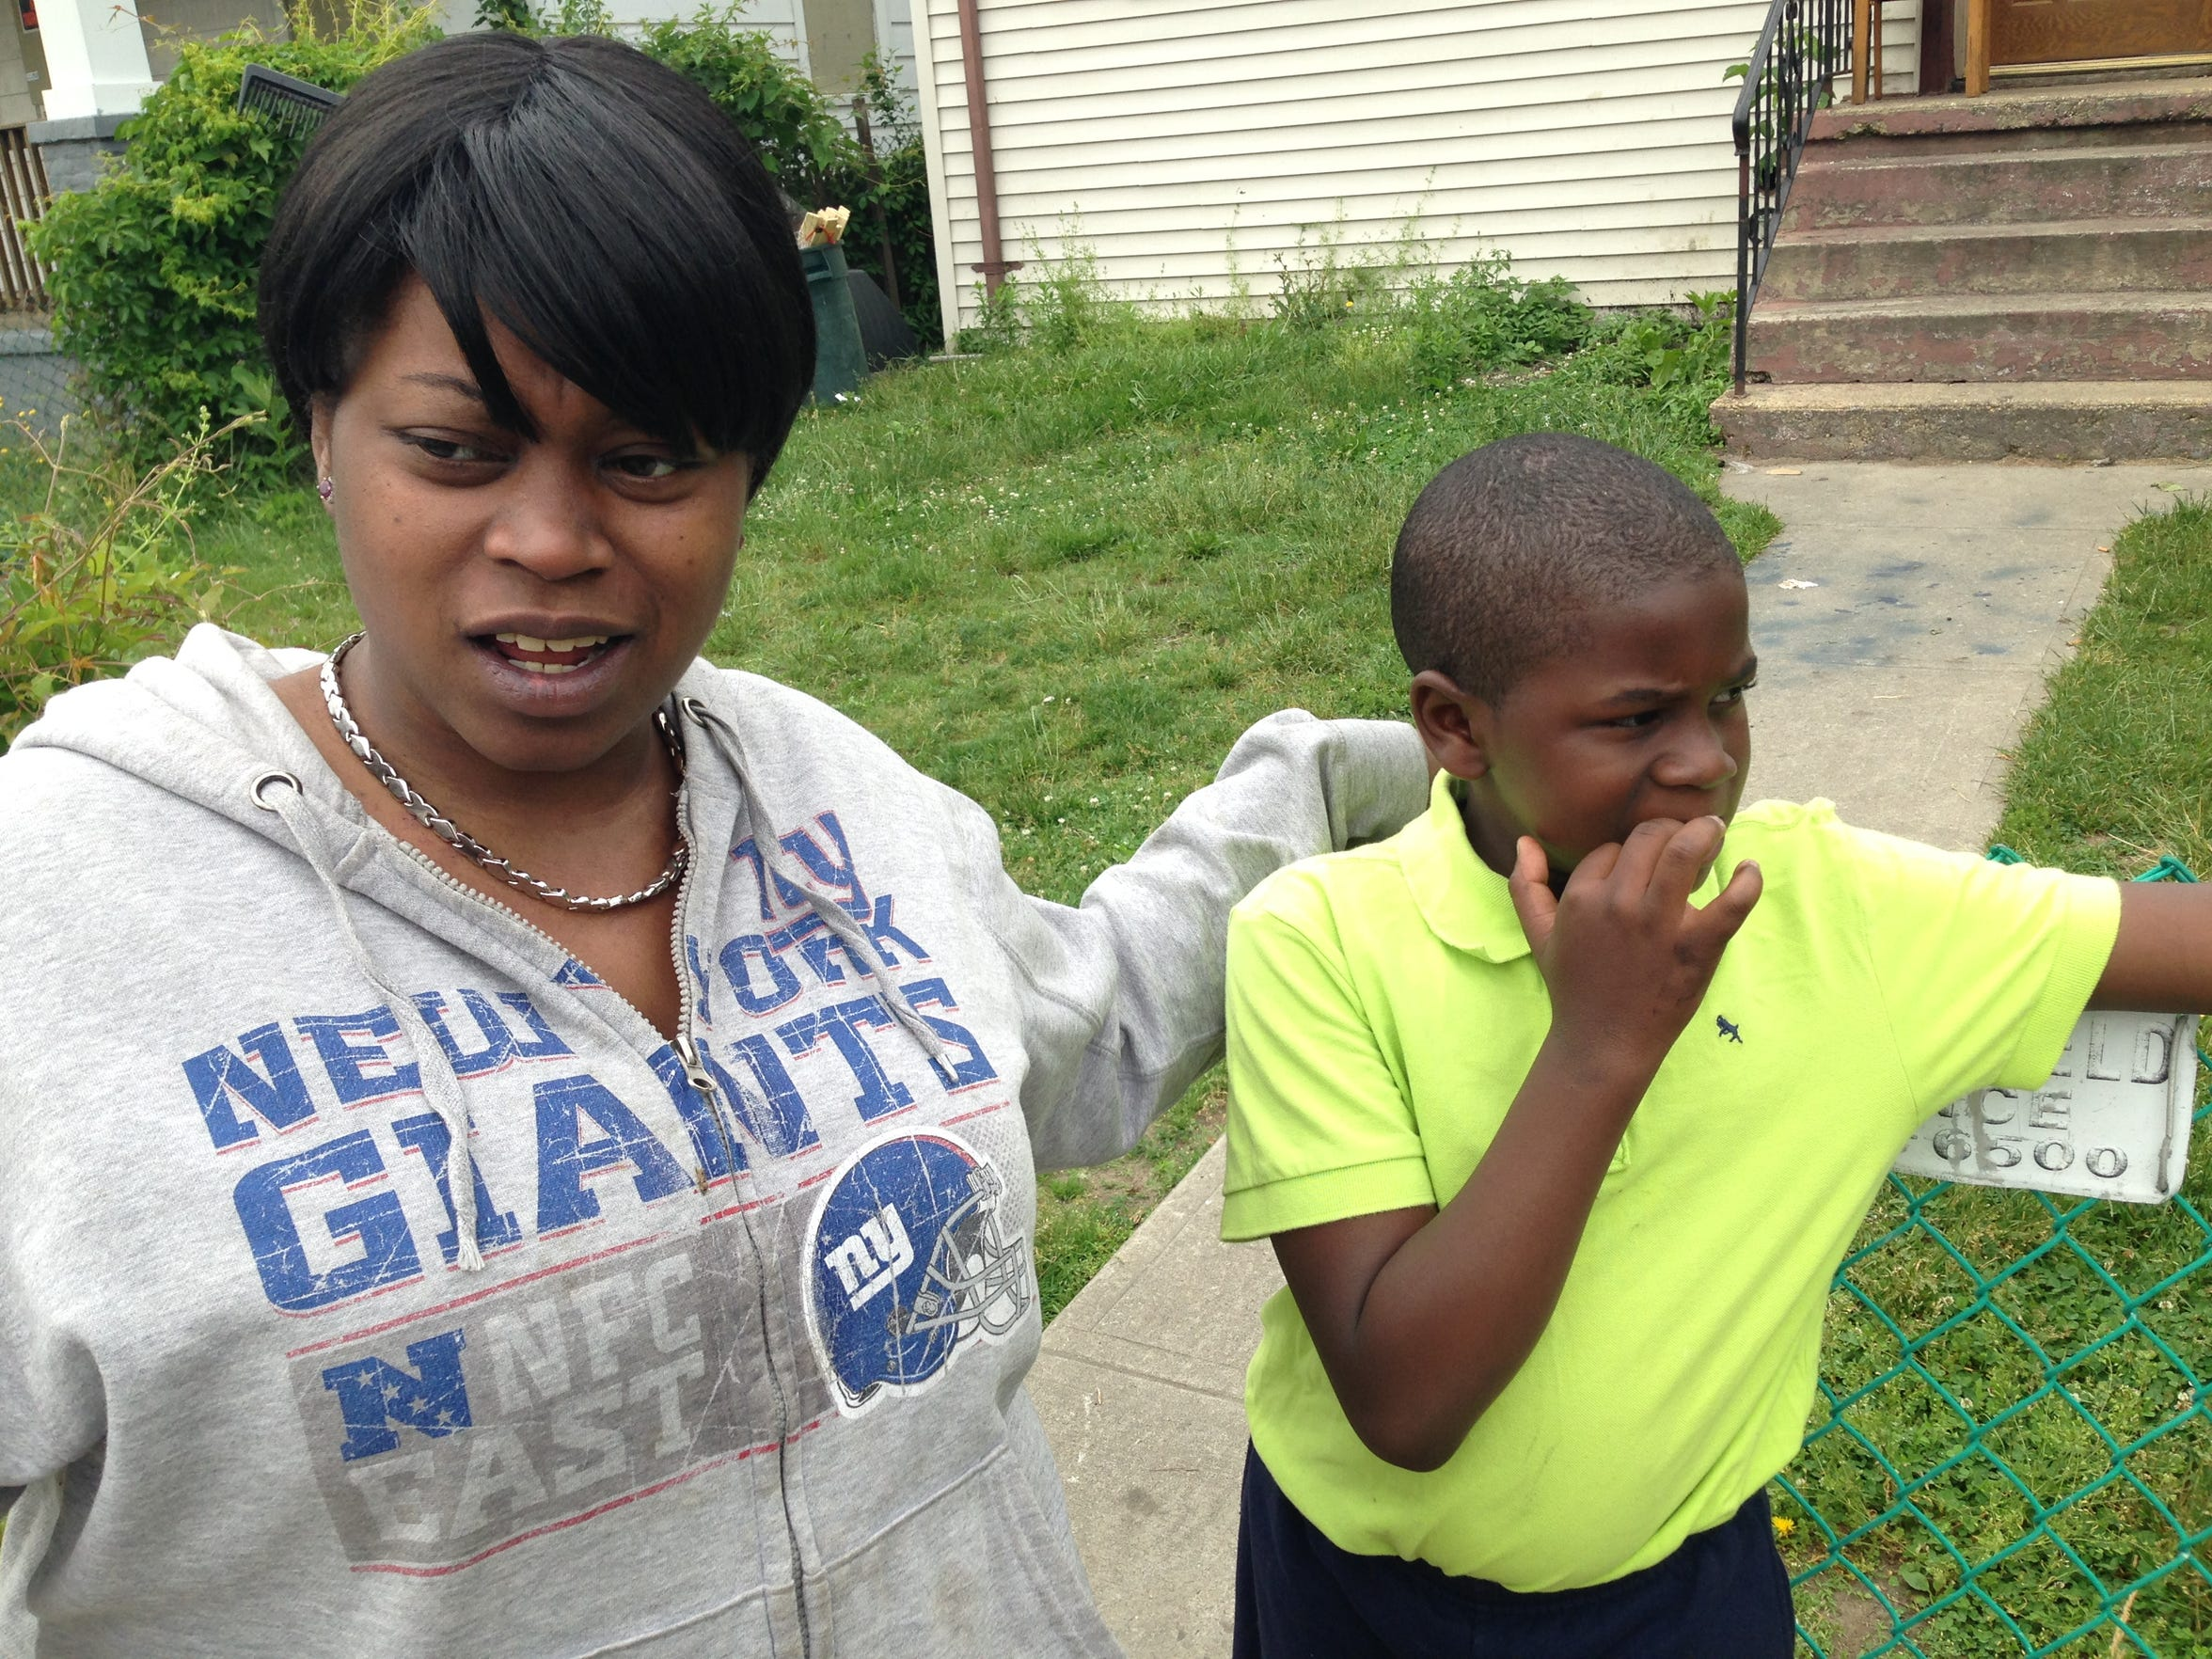 A year later, Sewell Avenue resident Lakayla Crumes, shown with her son, Julius, 9, still struggles with the anger see feels over the killing of Tamara Wilson-Seidle, who was gunned down in front of Crumes' home.